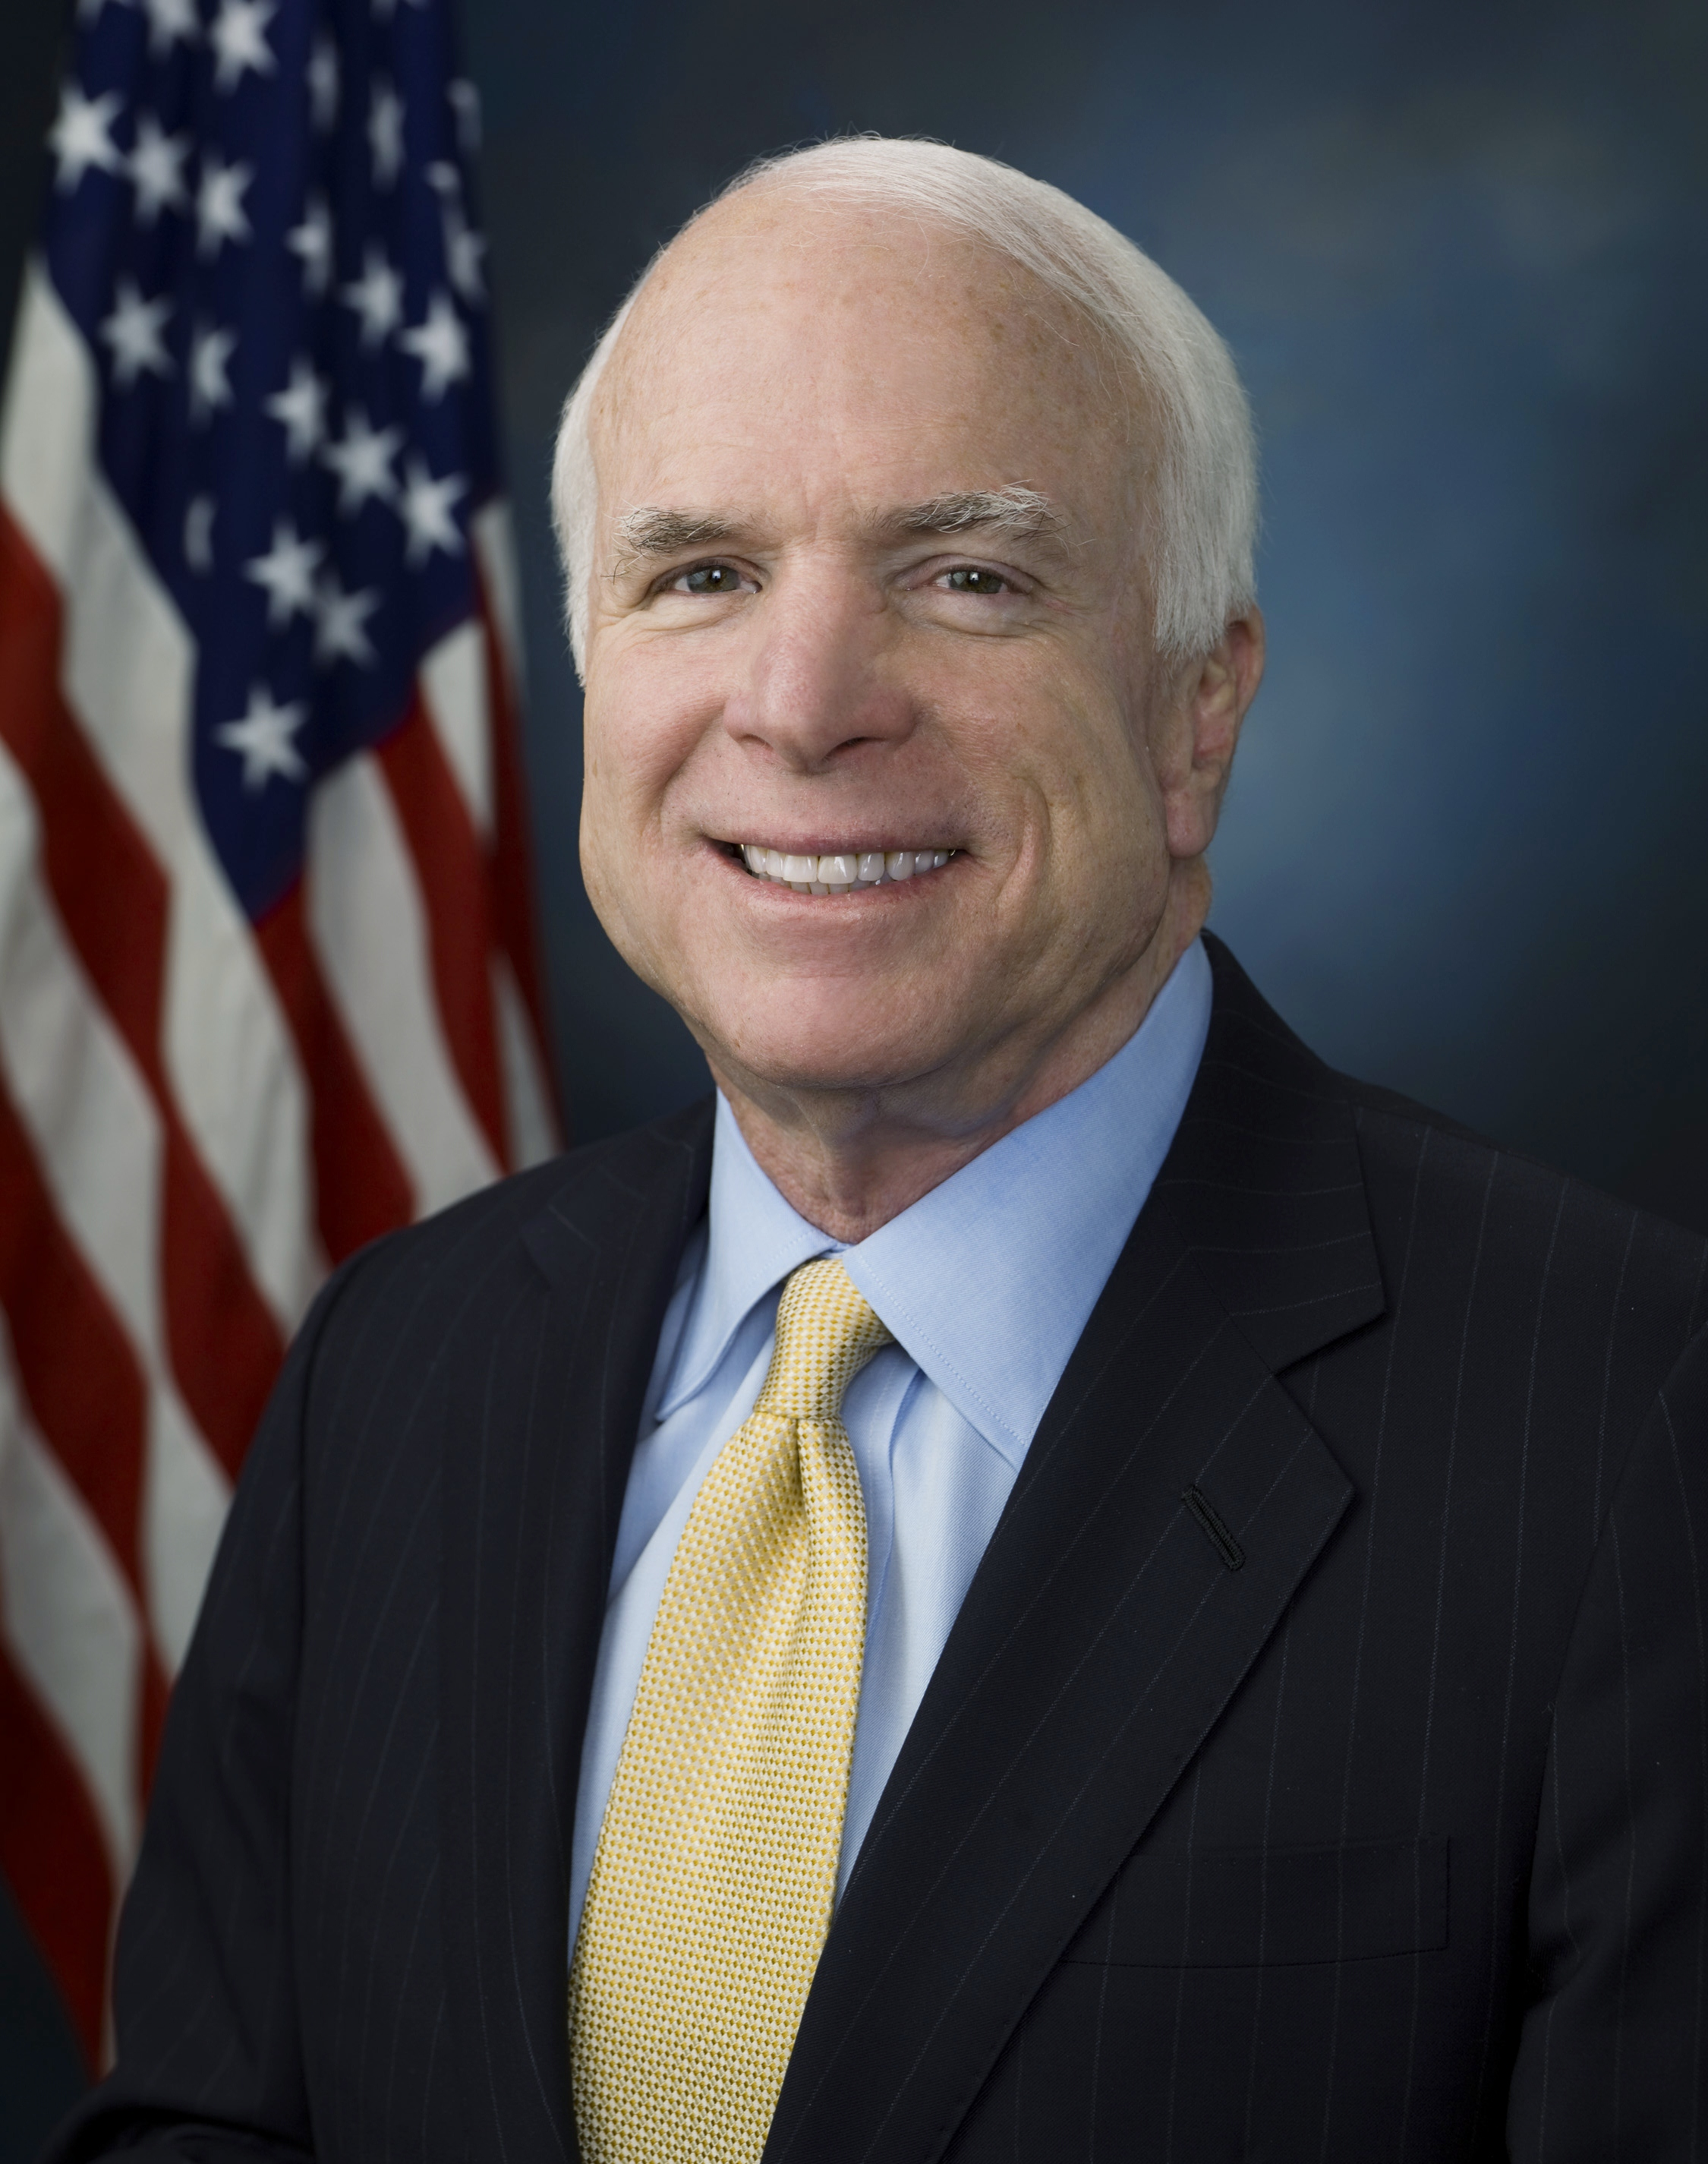 File:John McCain official portrait 2009.jpg